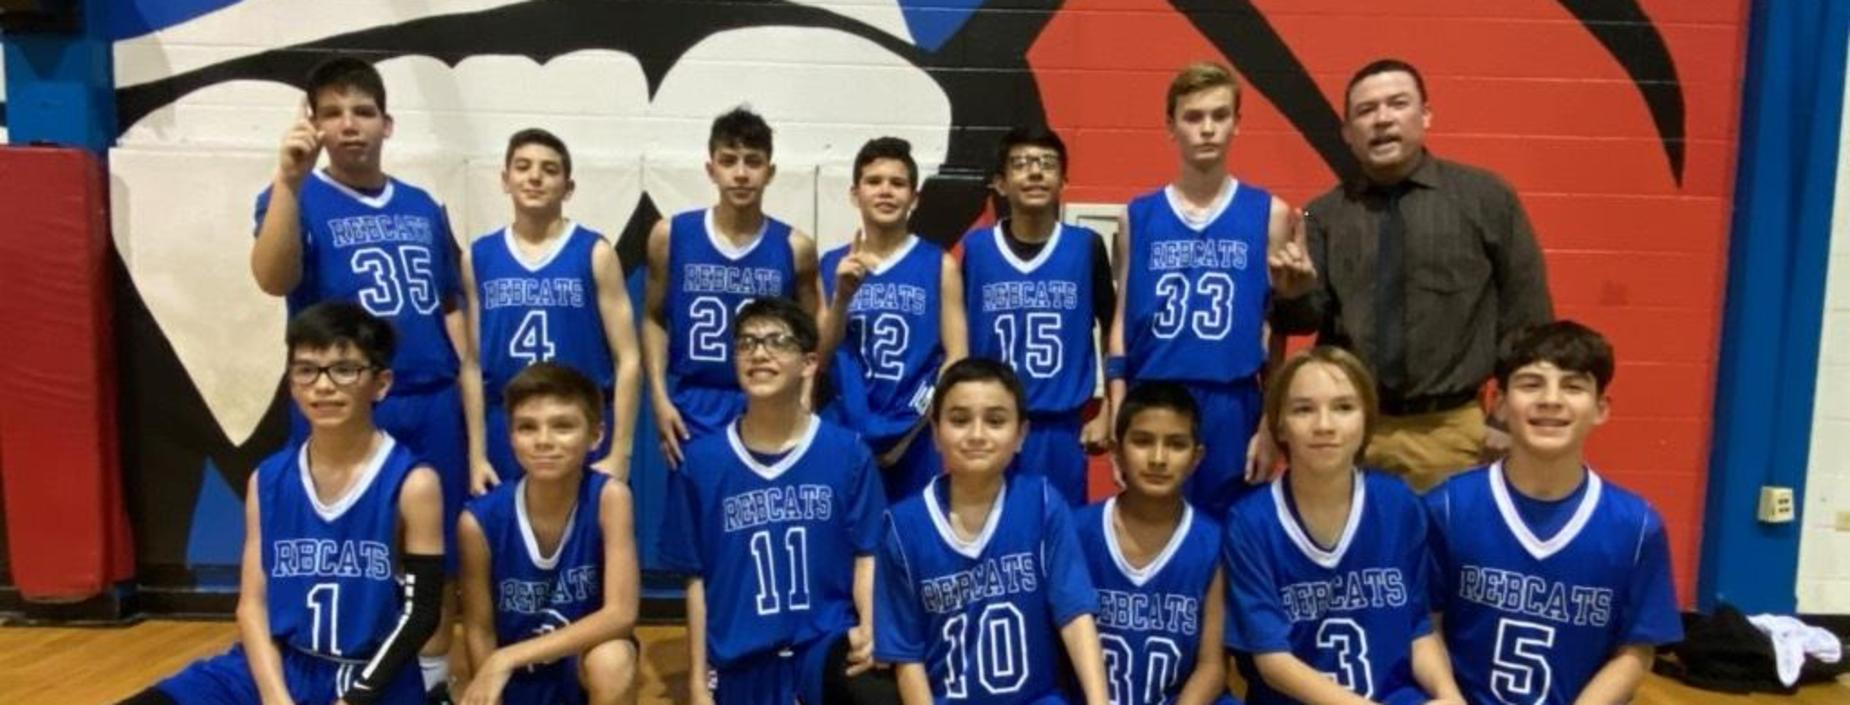 7th Grade Basketball Team ends season with a perfect record